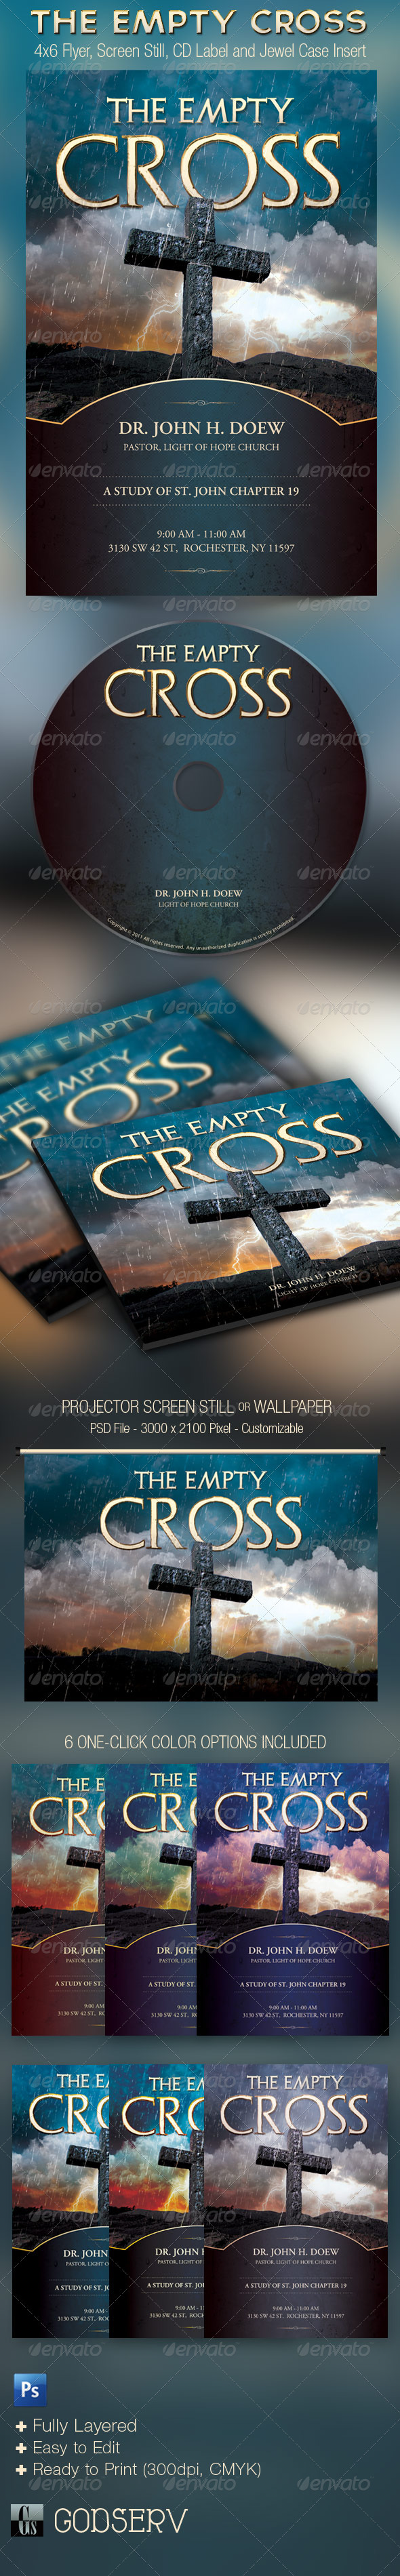 Empty Cross Church Flyer Slide CD Template - Church Flyers